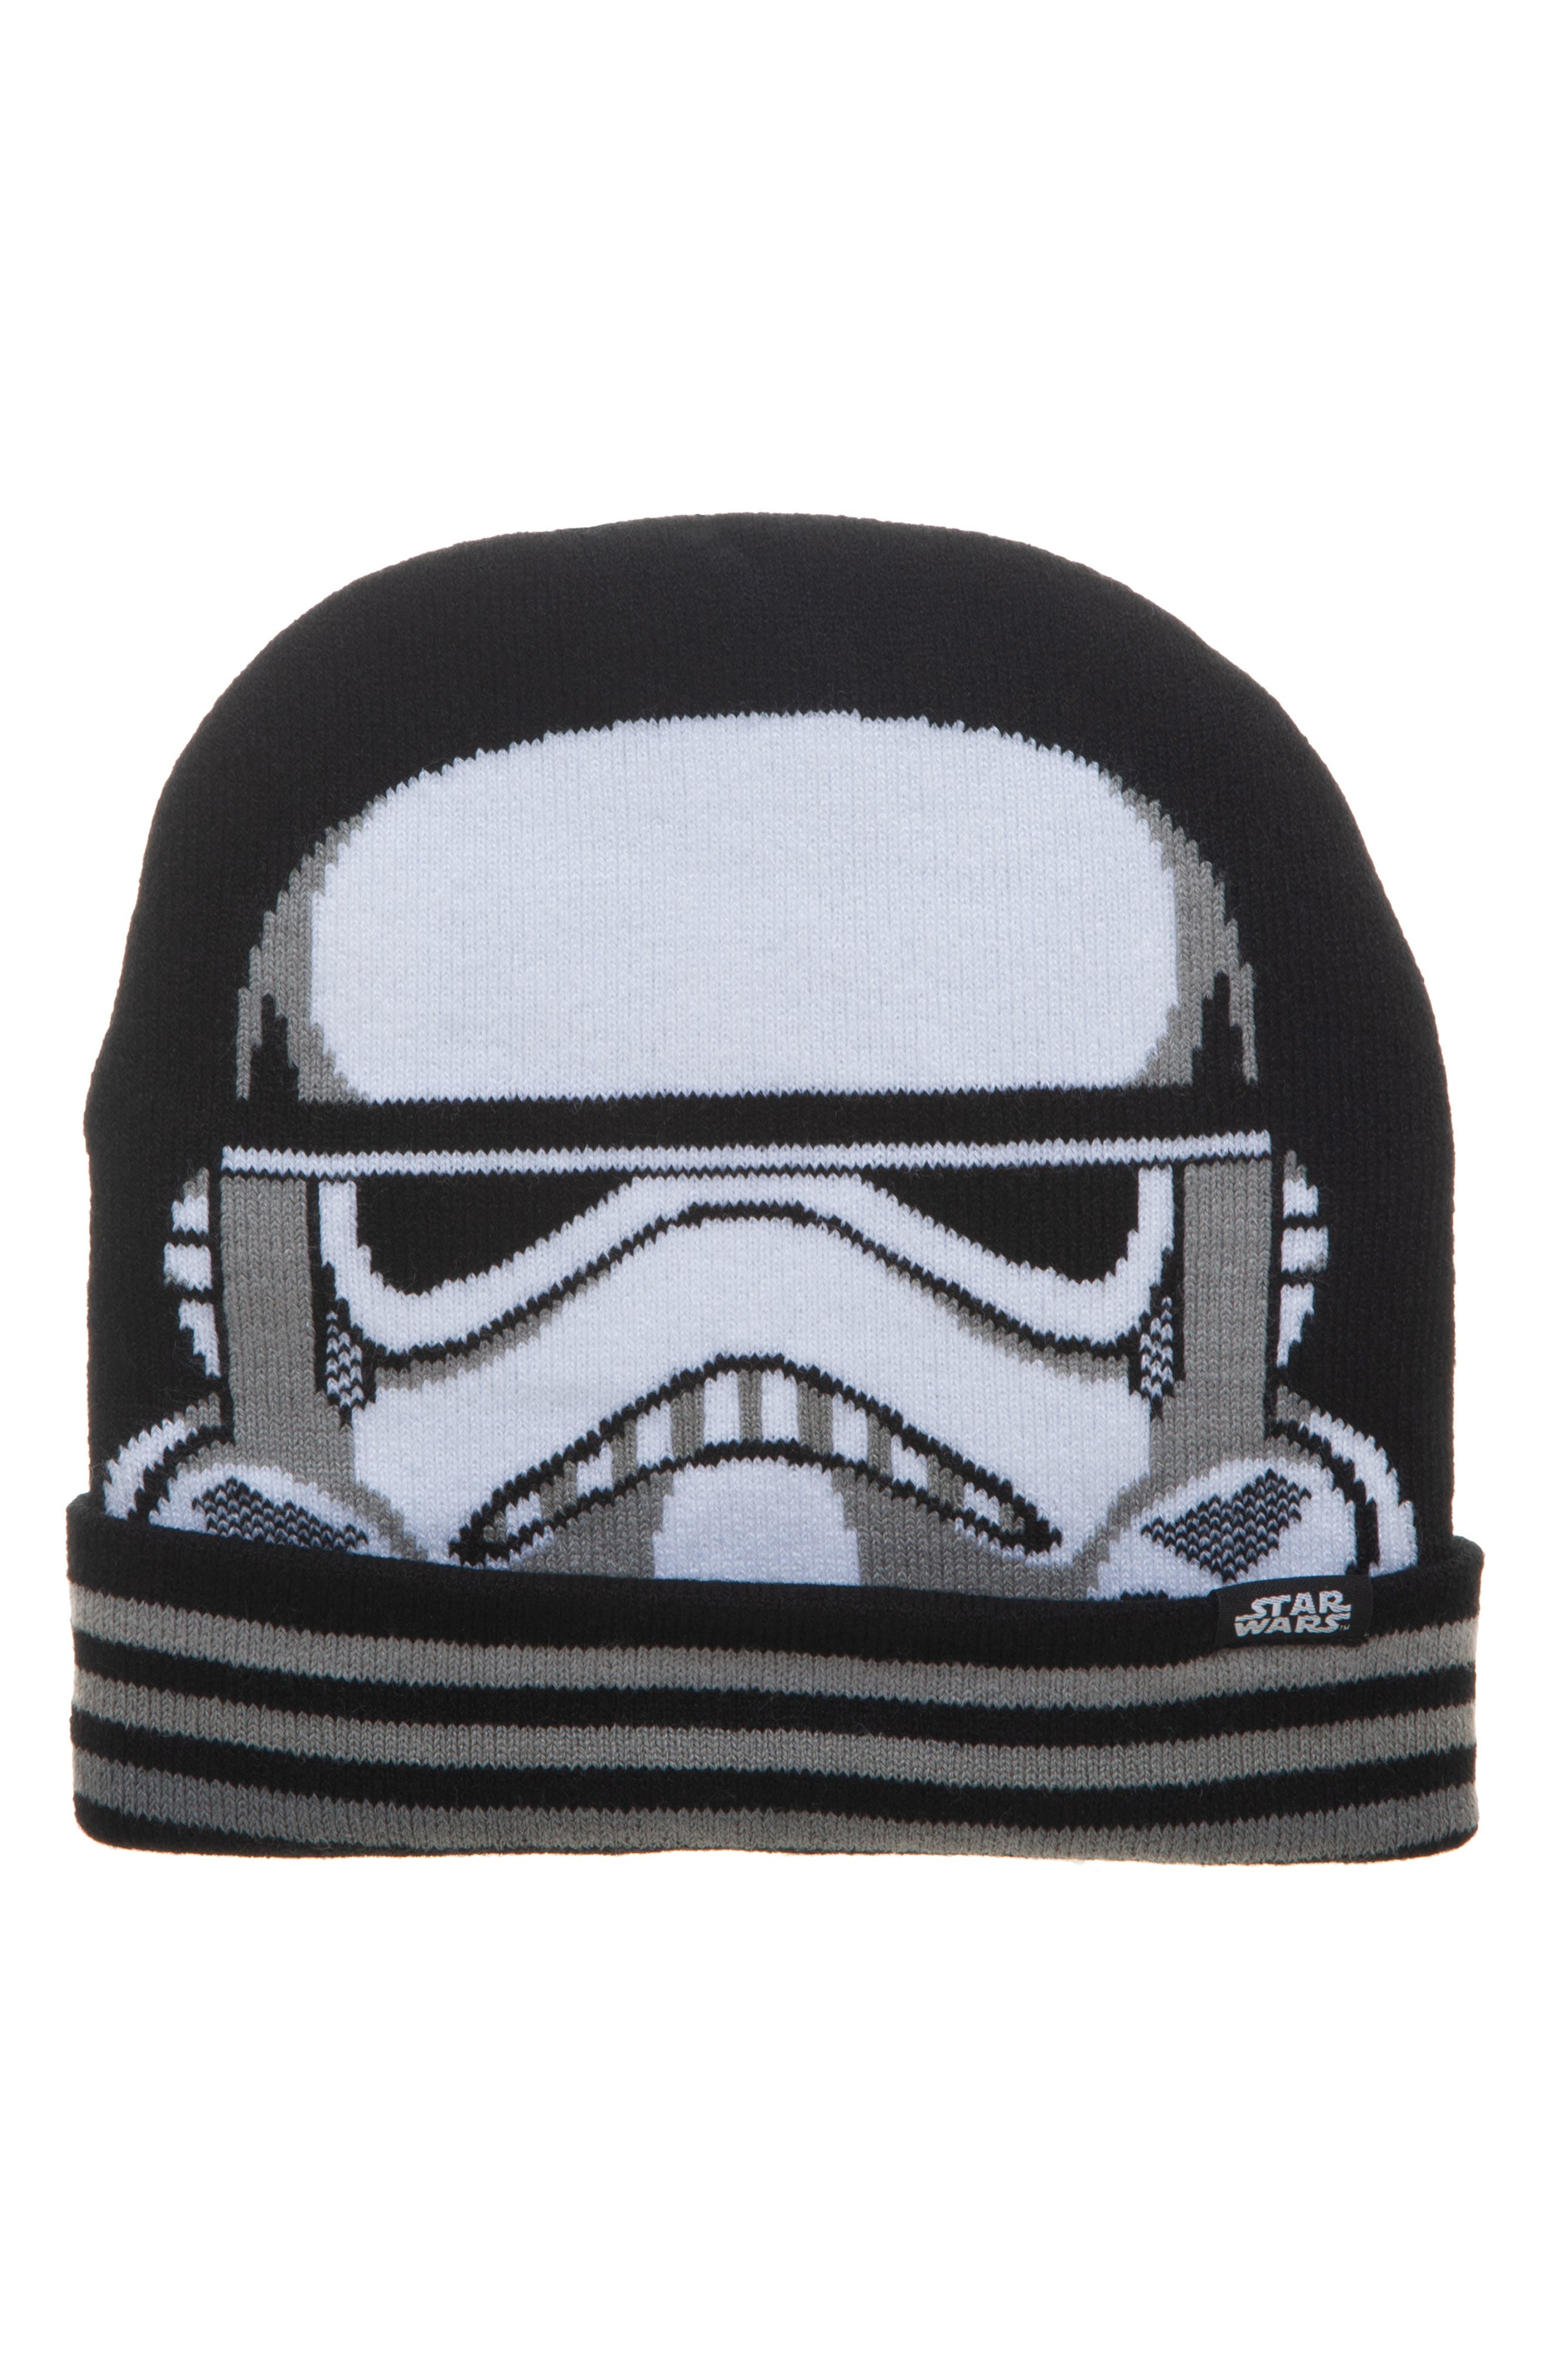 Boys Star Wars Stormtrooper Beanie